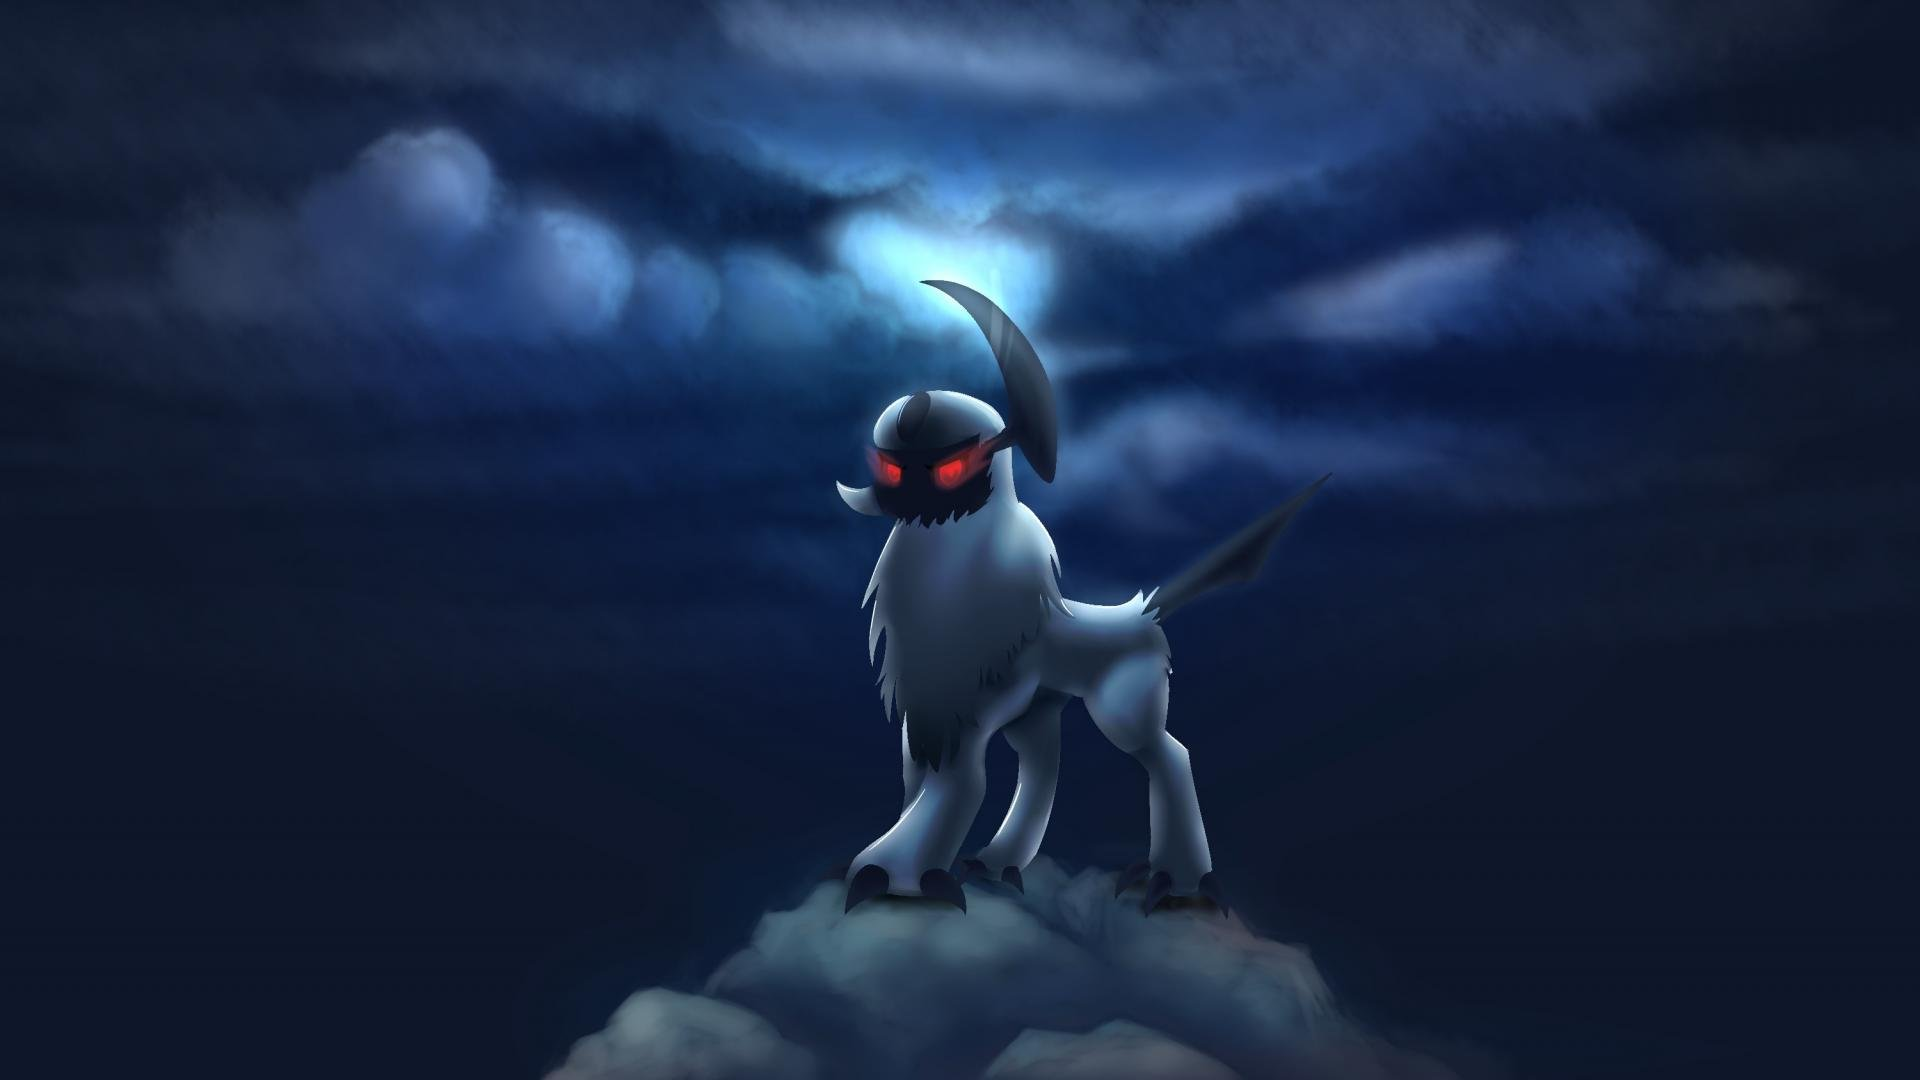 Absol Wallpaper Download 1920x1080